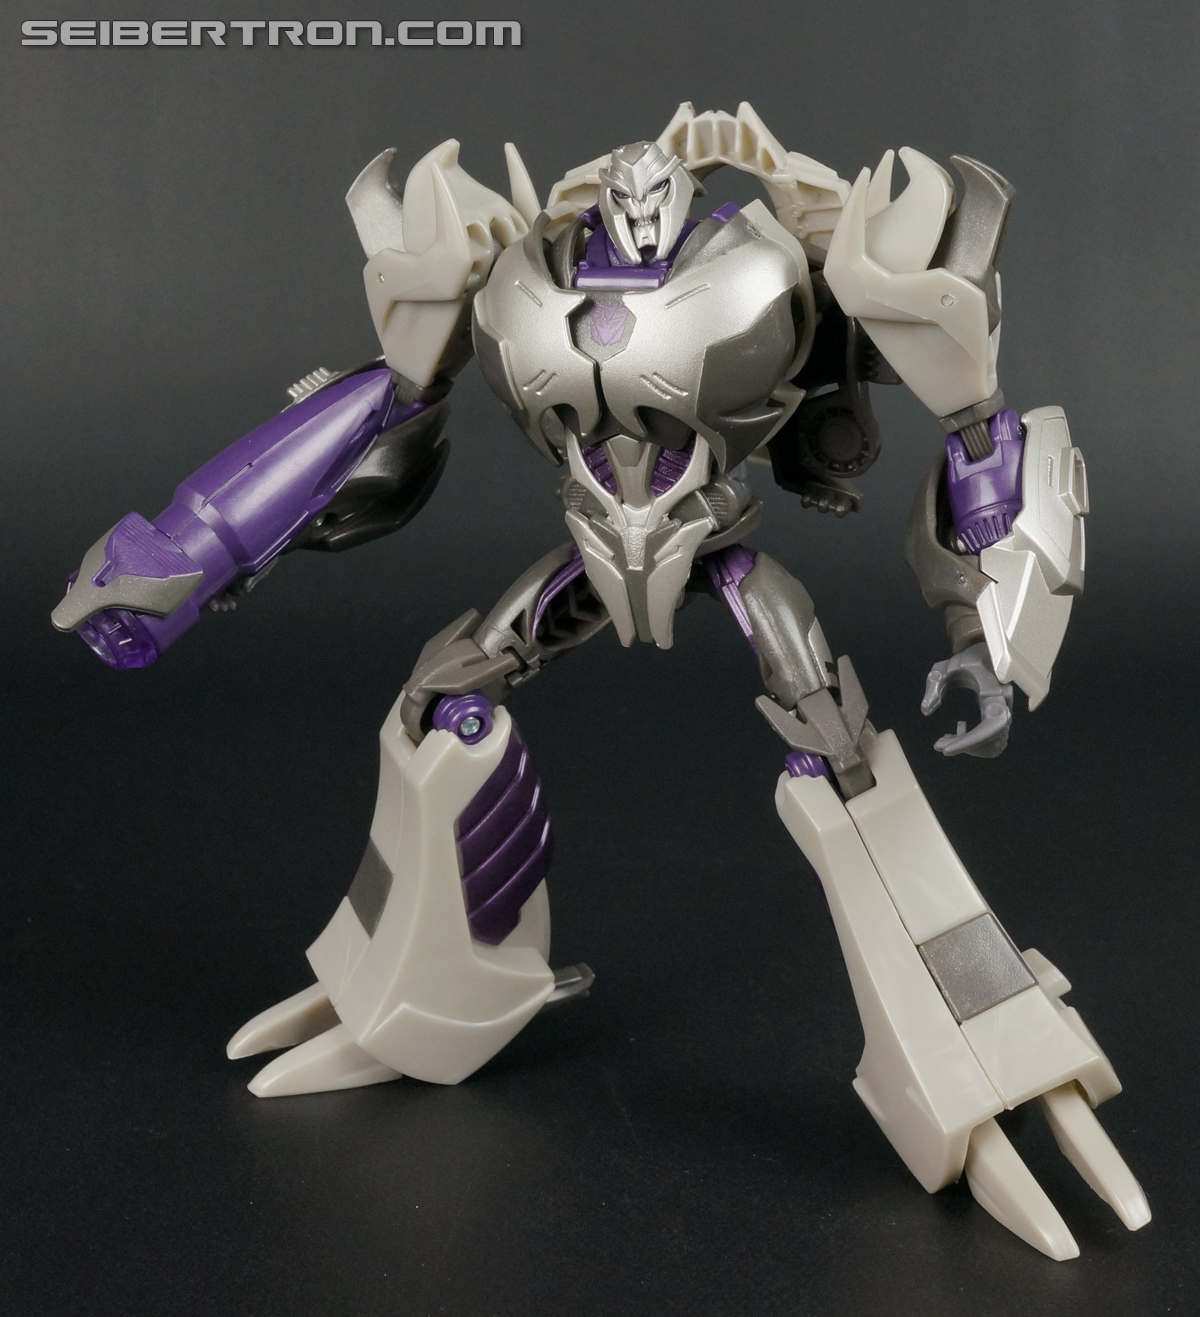 Transformers First Edition Megatron (Image #118 of 165)